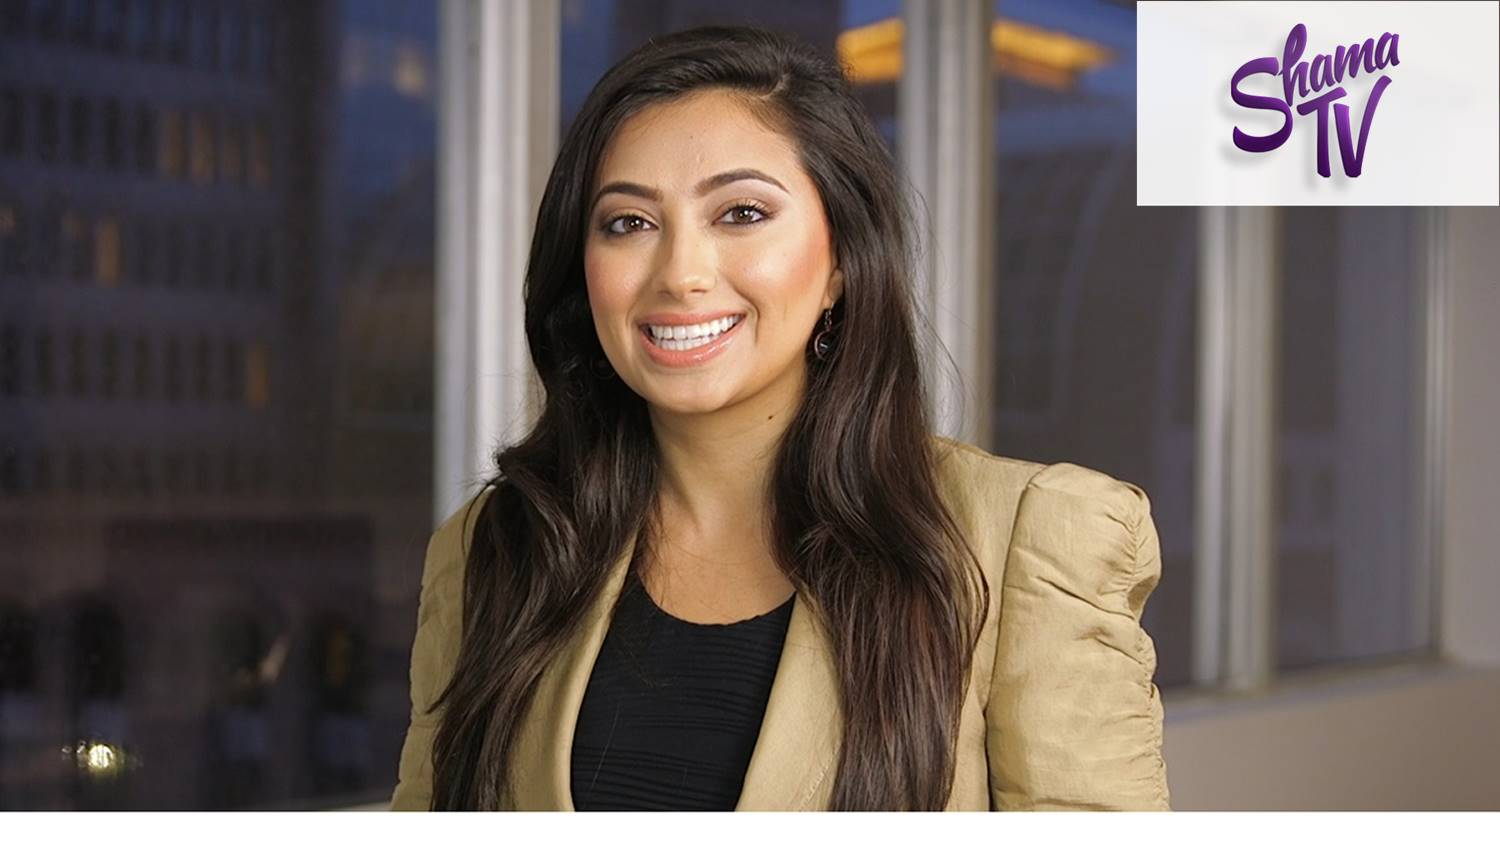 Shama Hyder: How To Market To A Massive Audience